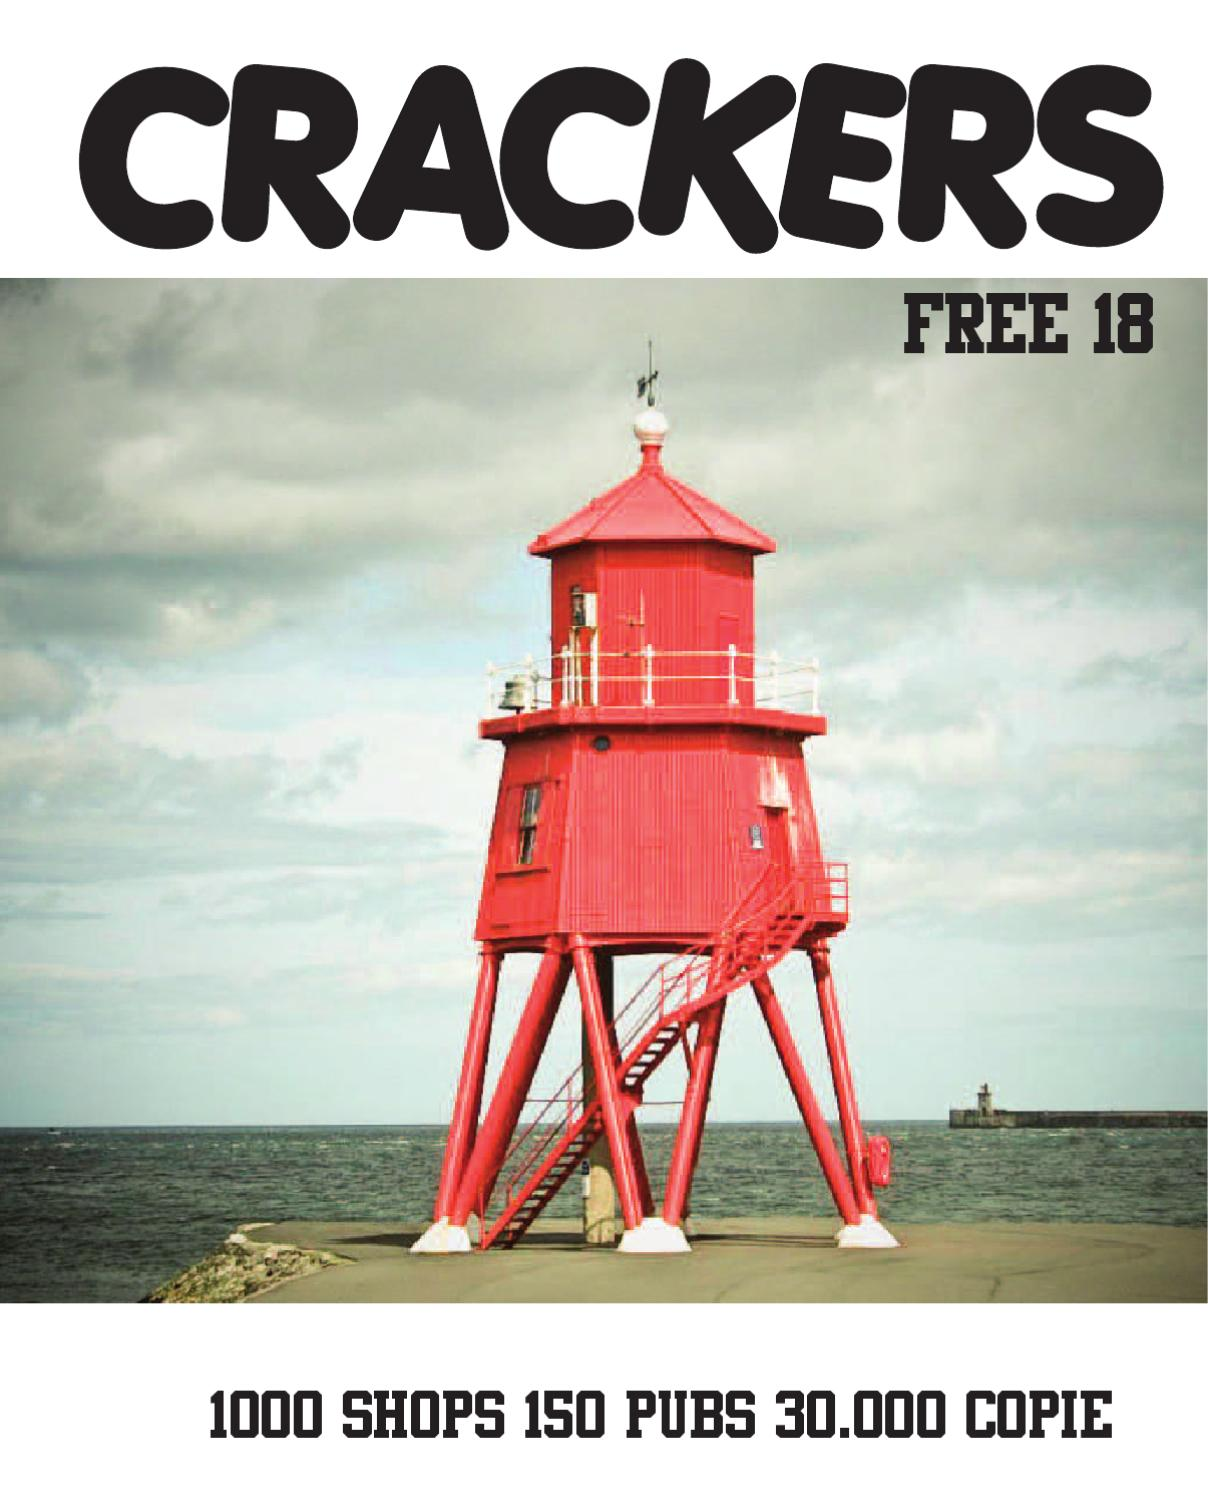 Crackers 18 by Tab Communication issuu